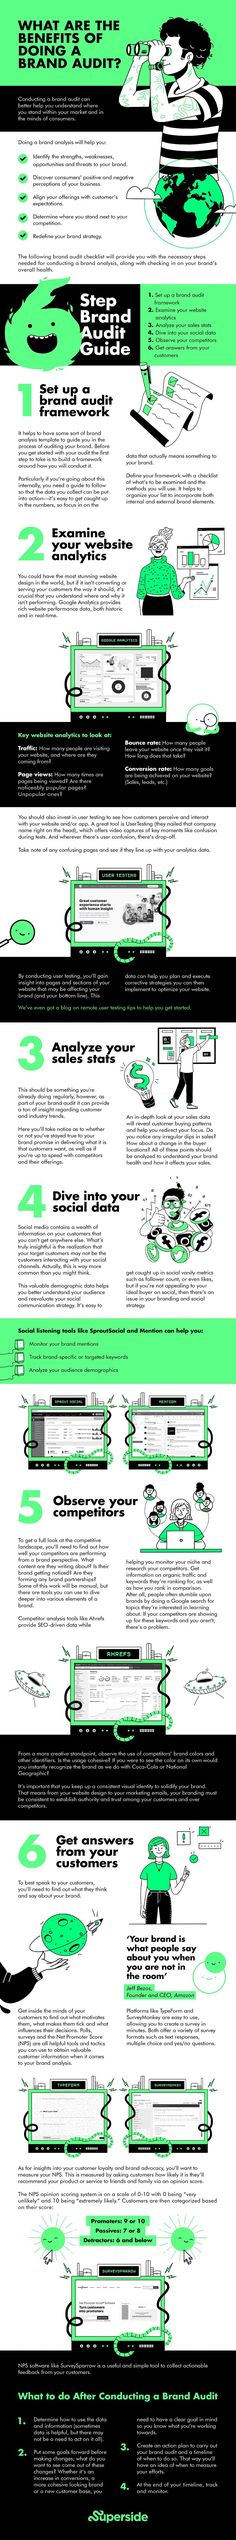 6-Step Guide to Performing a Brand Audit. What is a brand audit? A brand audit refers to an in-depth examination of your brand. Business Infographics, Step Guide, Archive